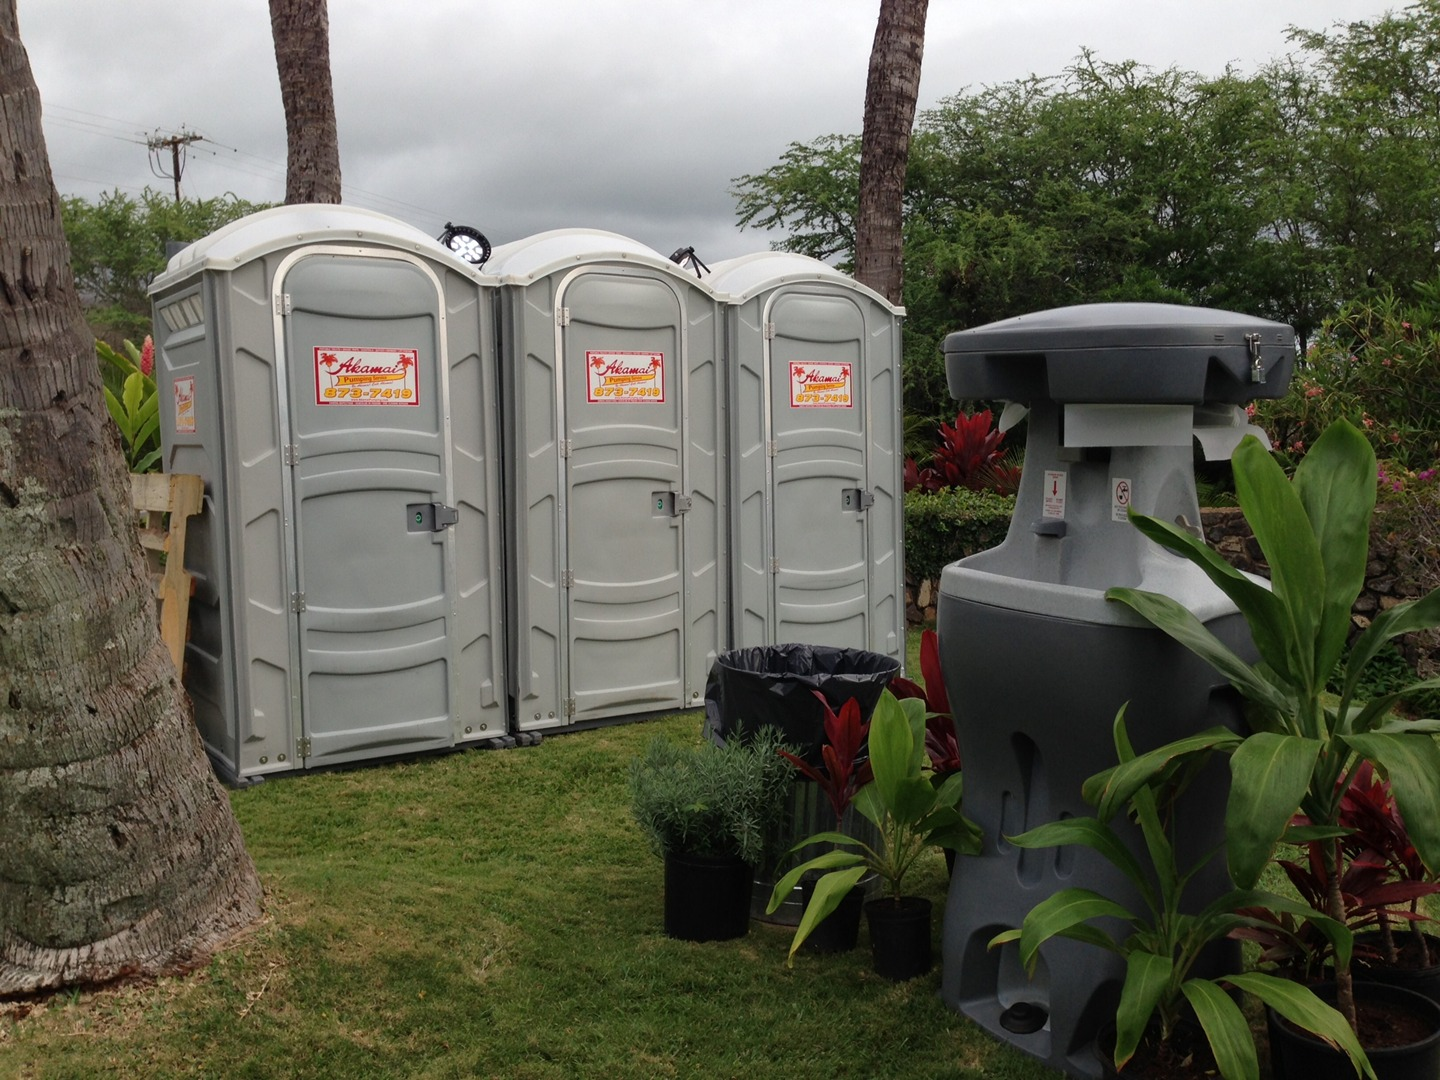 Maui\'s Top Portable Toilet Supplier Answers FAQs About the Equipment ...